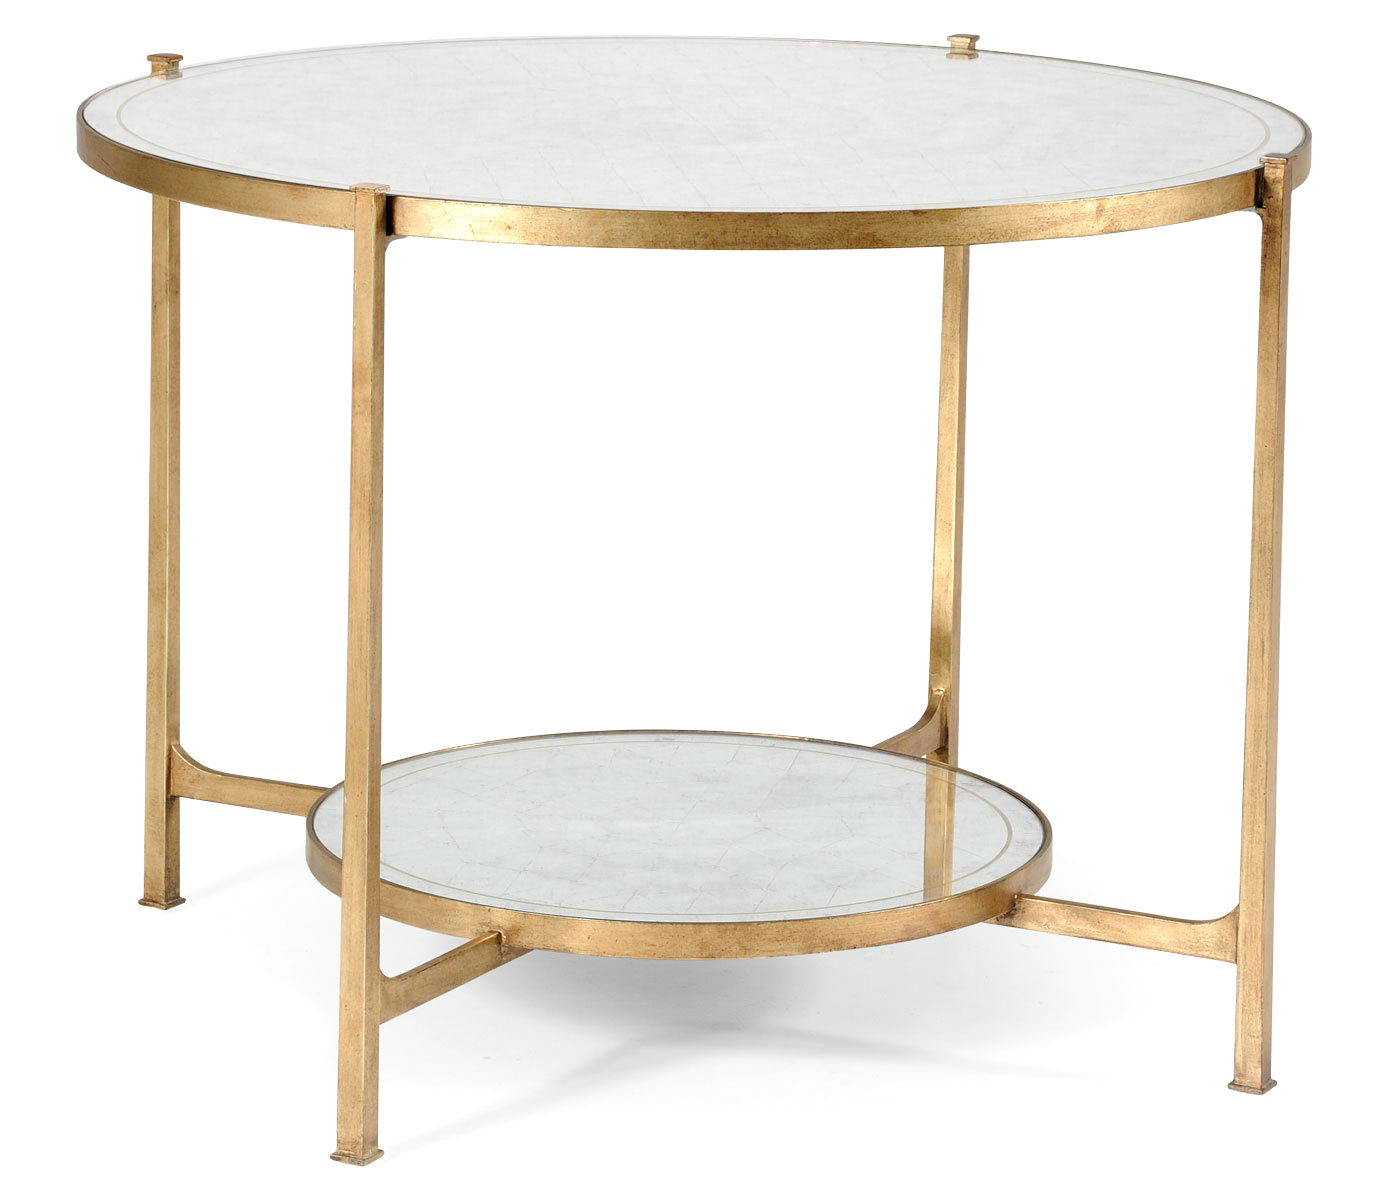 gold side table tables end small accent elegant dia antiqued mirrored gilt partner console coffee available hospitality residential runner sewing pattern windham black entry strip